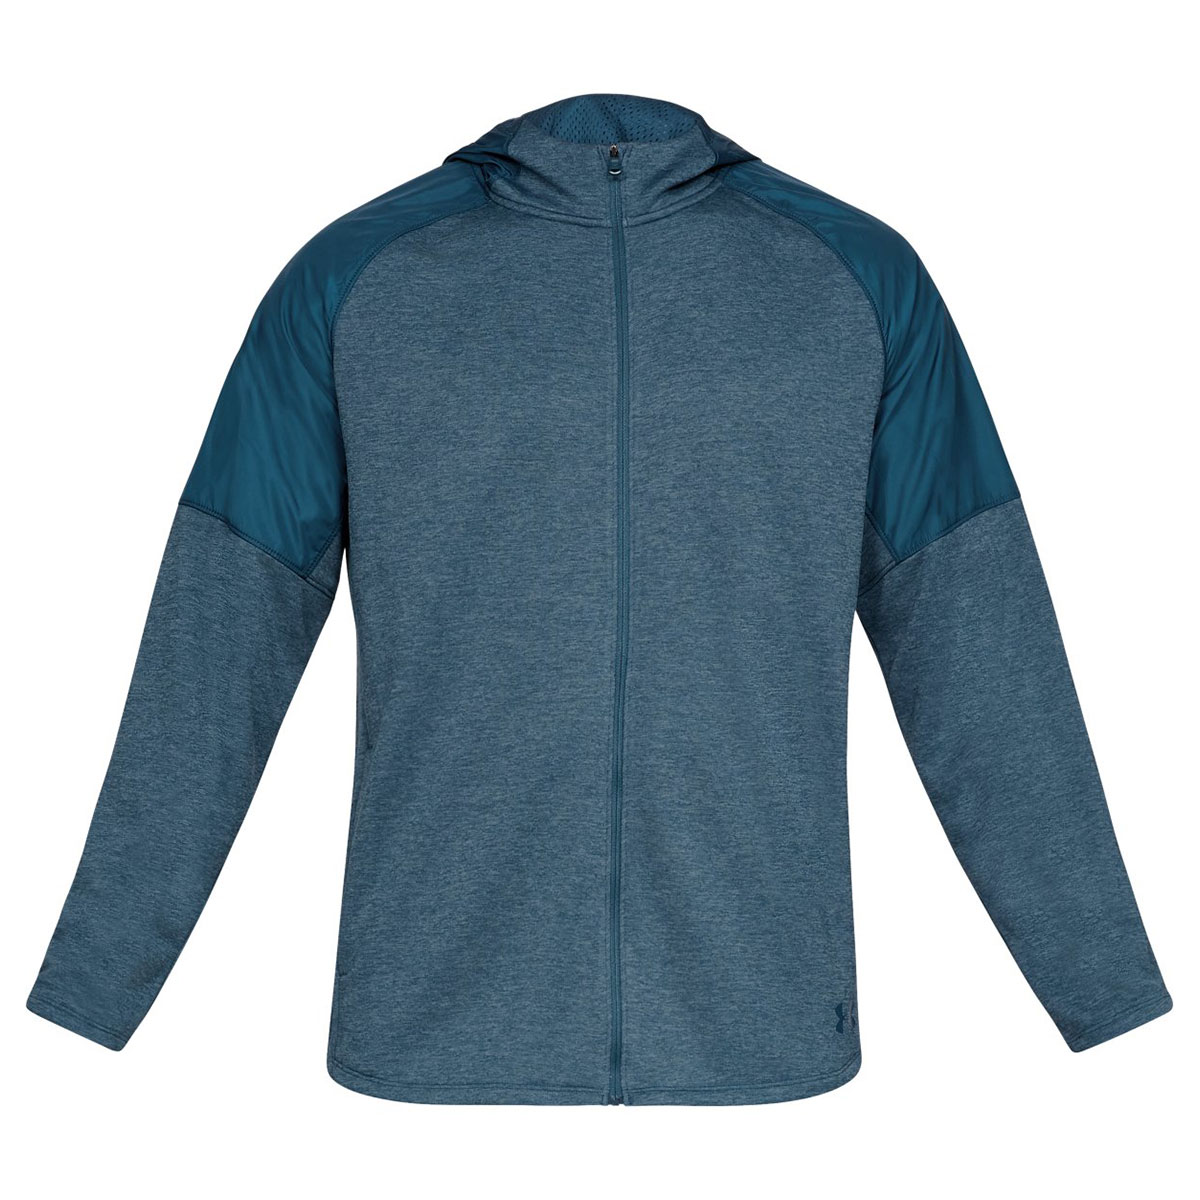 Under Armour Mens 2019 MK1 Terry FZ Soft Lightweight Warm Training Hoody